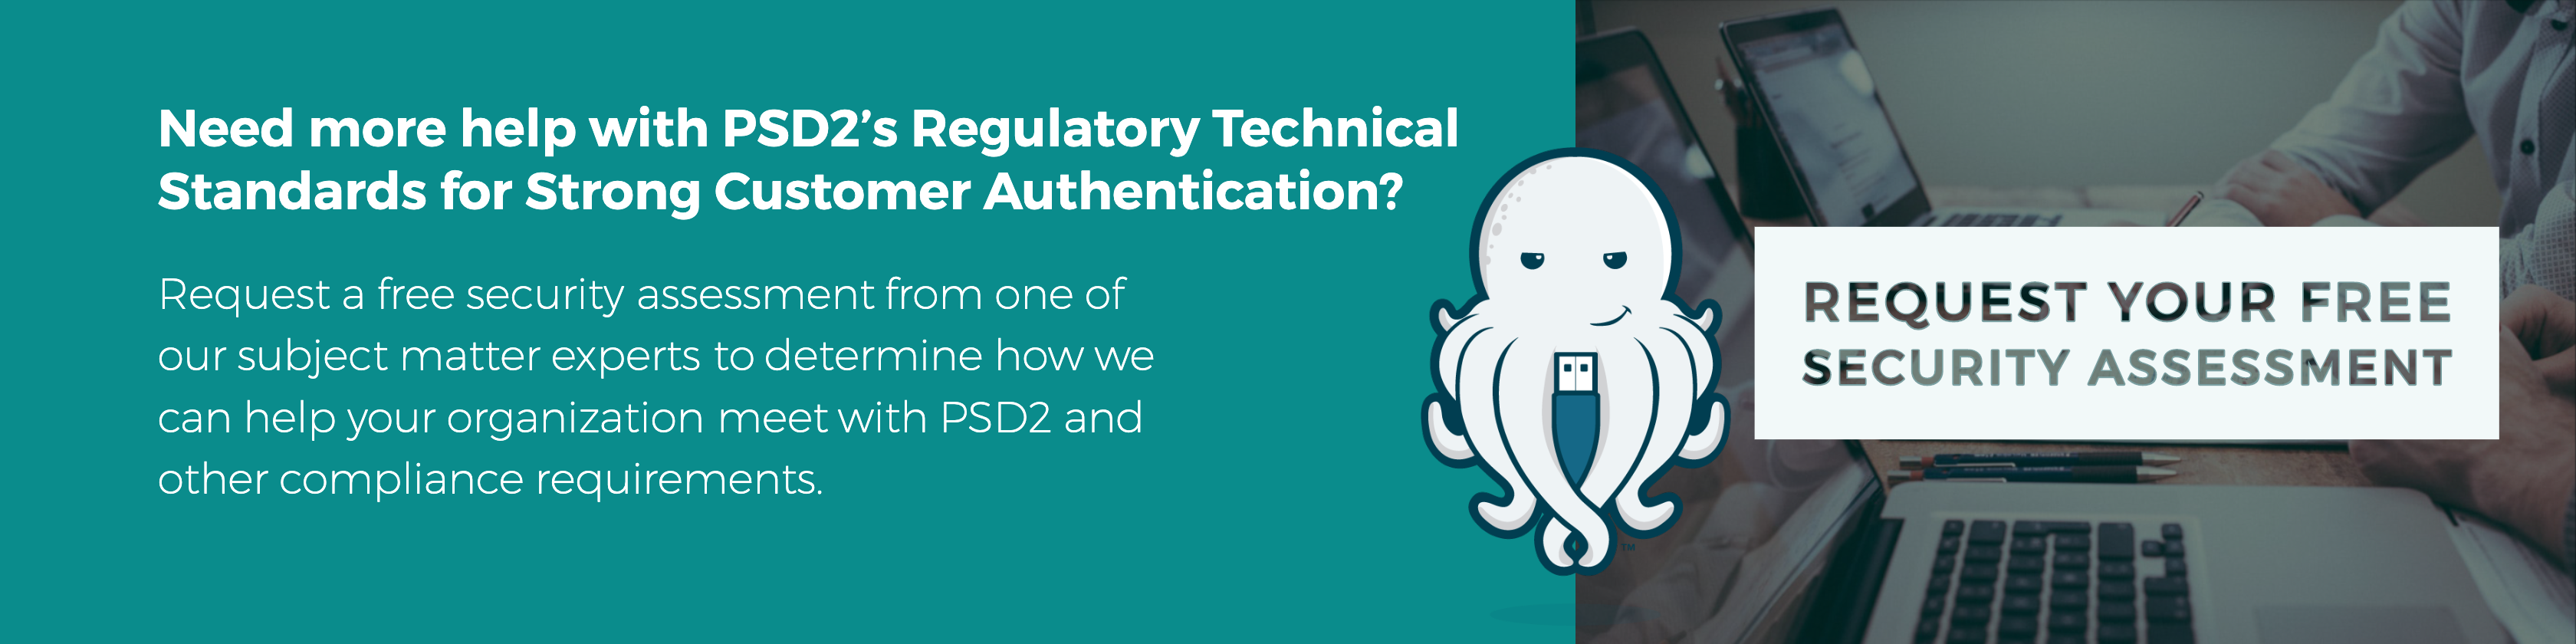 Click here to get more help with PSD2's Regulatory Technical Standards for Strong Customer Authentication.